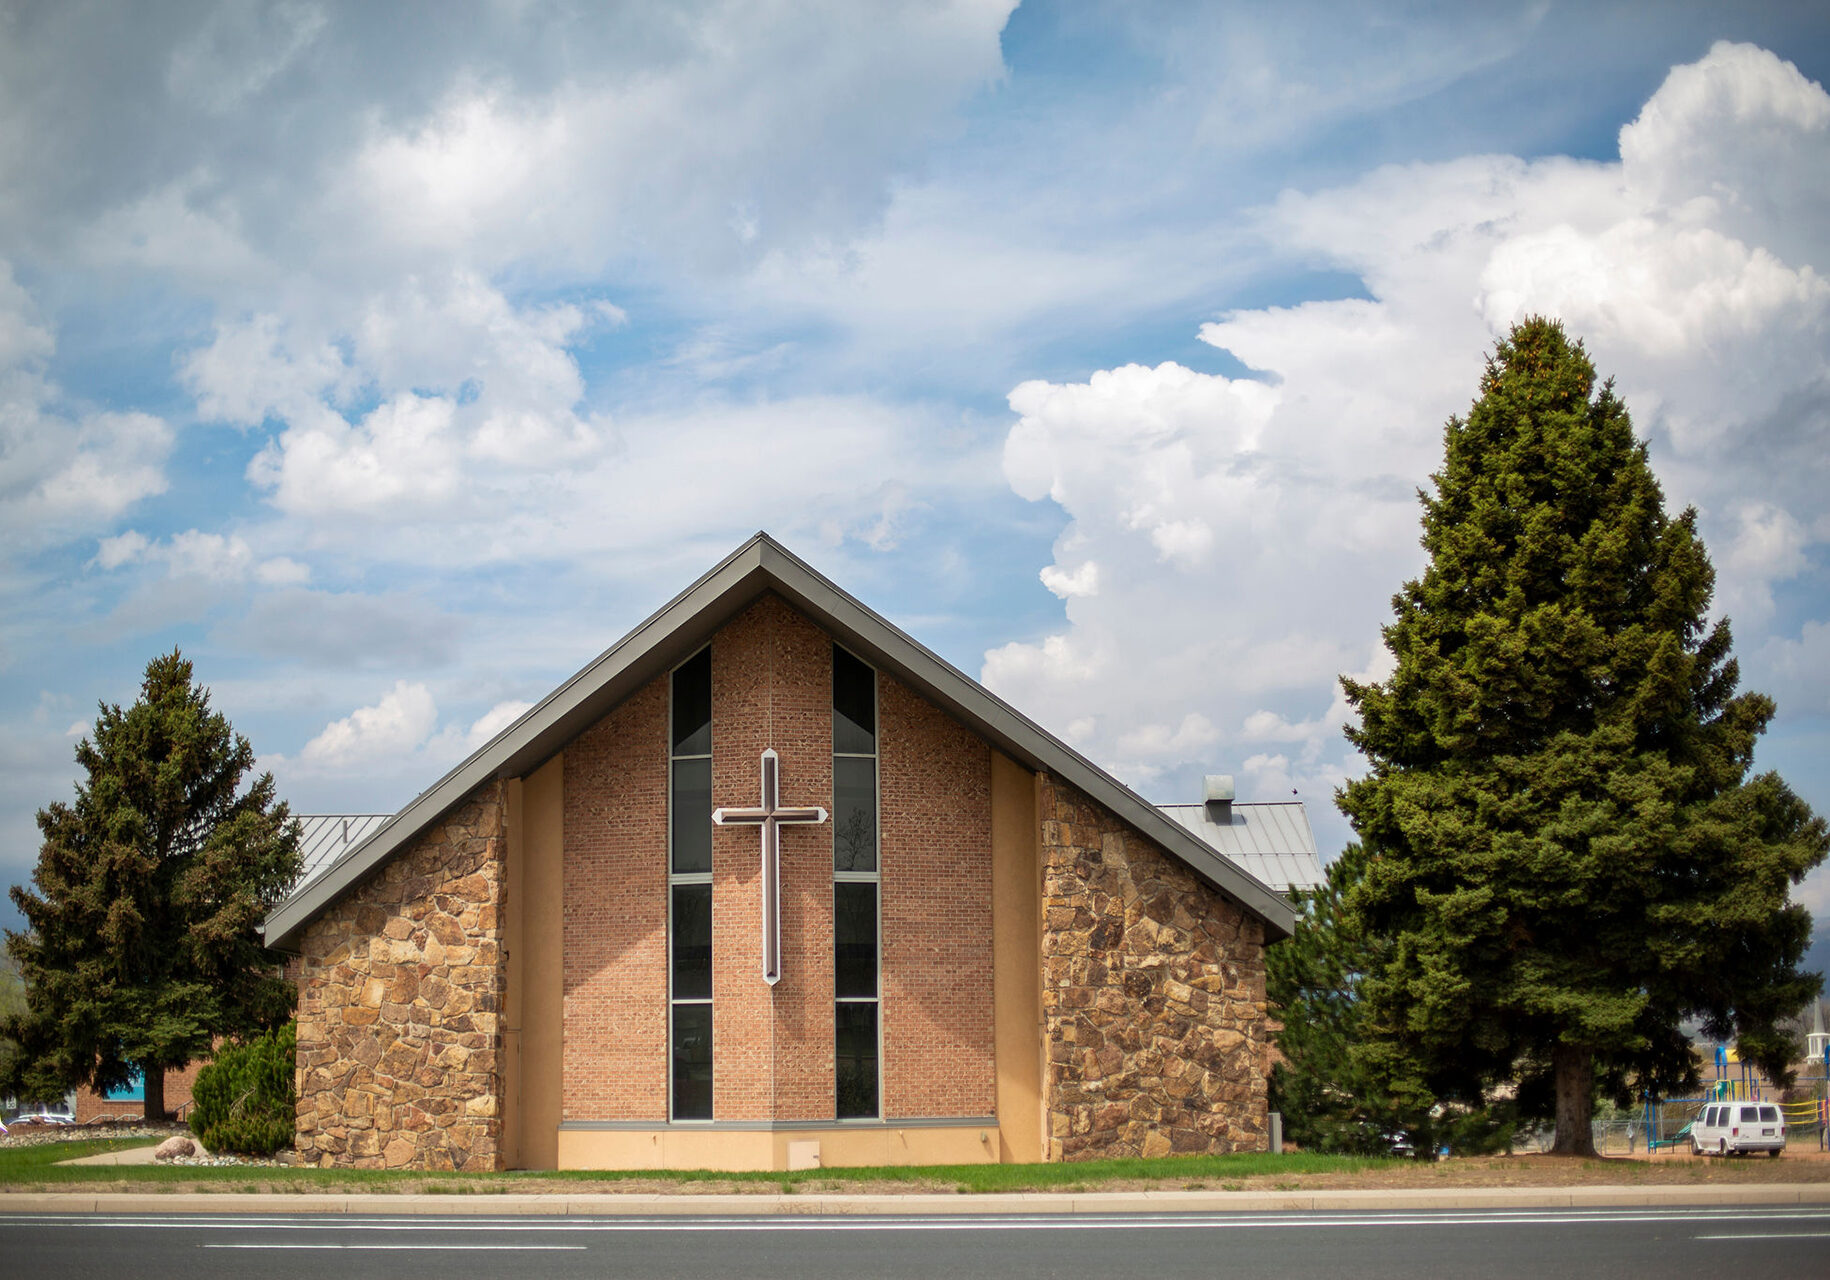 heart-of-springs-church-outside-view-front-of-building